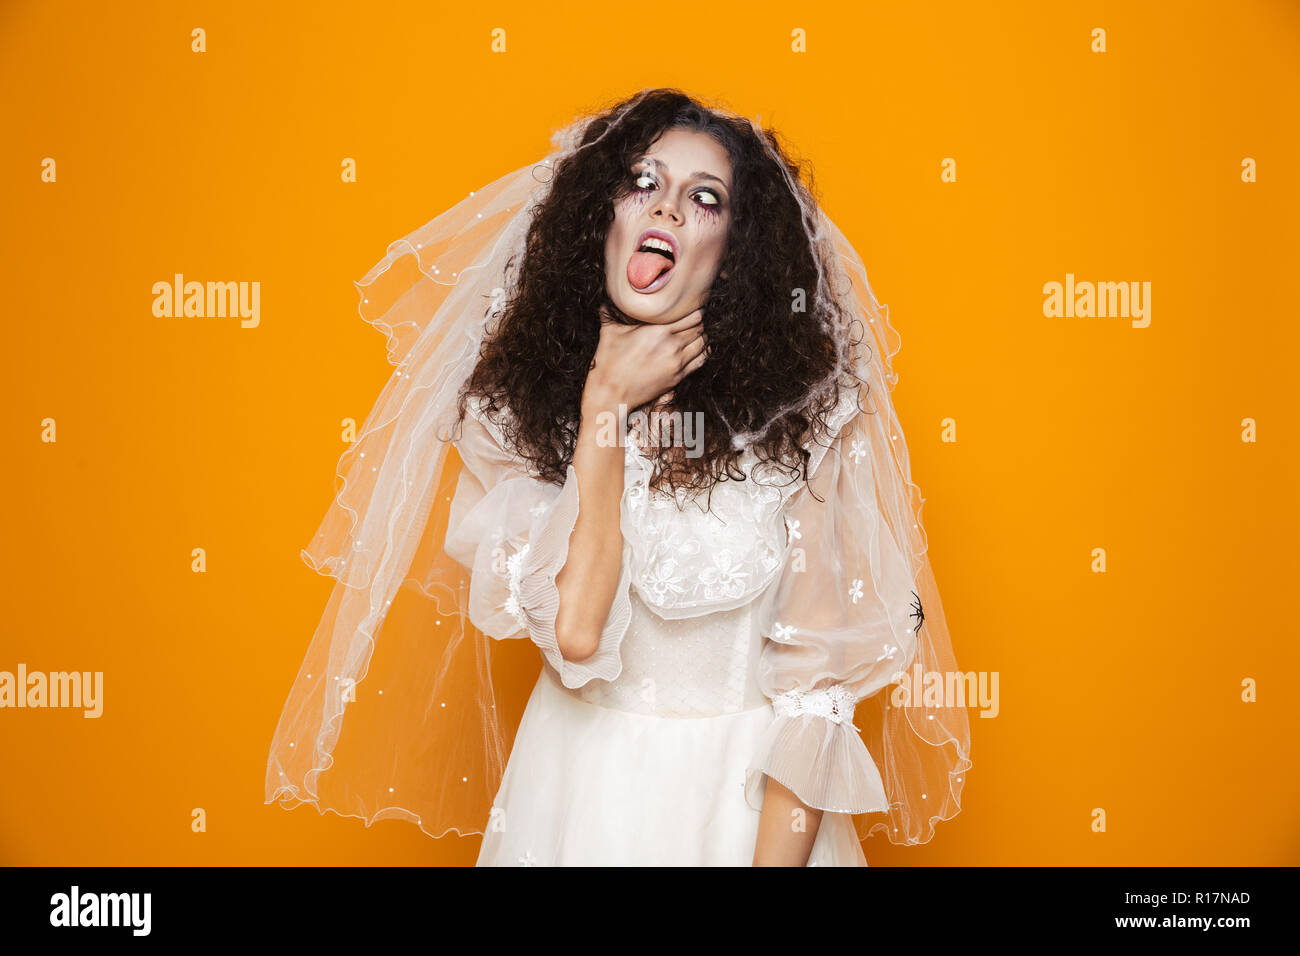 Image of dead bride zombie on halloween wearing wedding dress and scary makeup choking herself isolated over yellow background - Stock Image